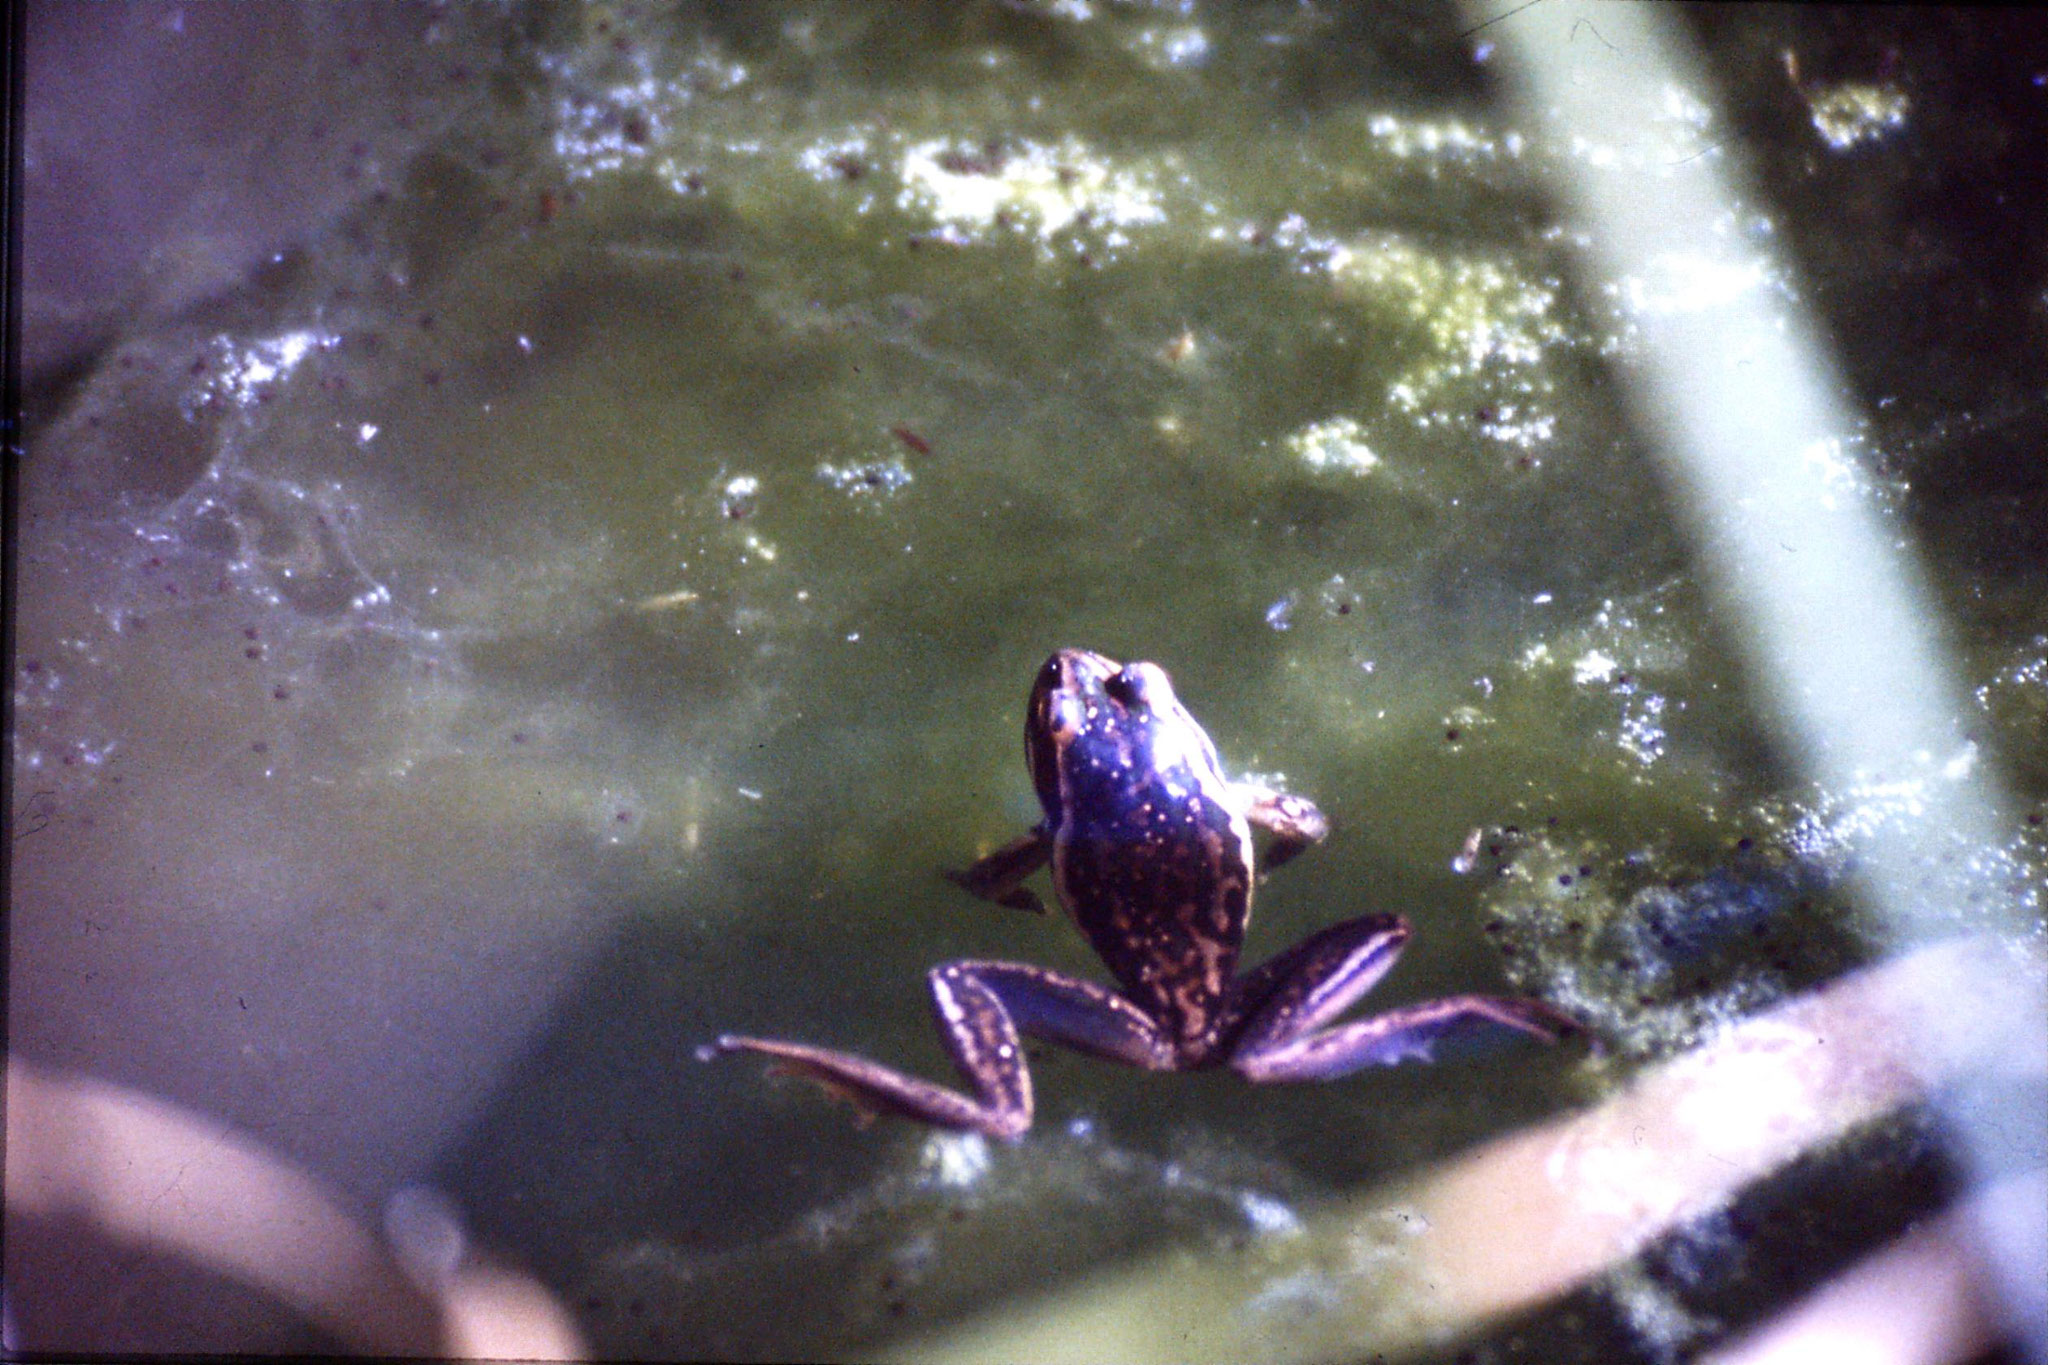 31/8/1990: 29: Waimangu frogs